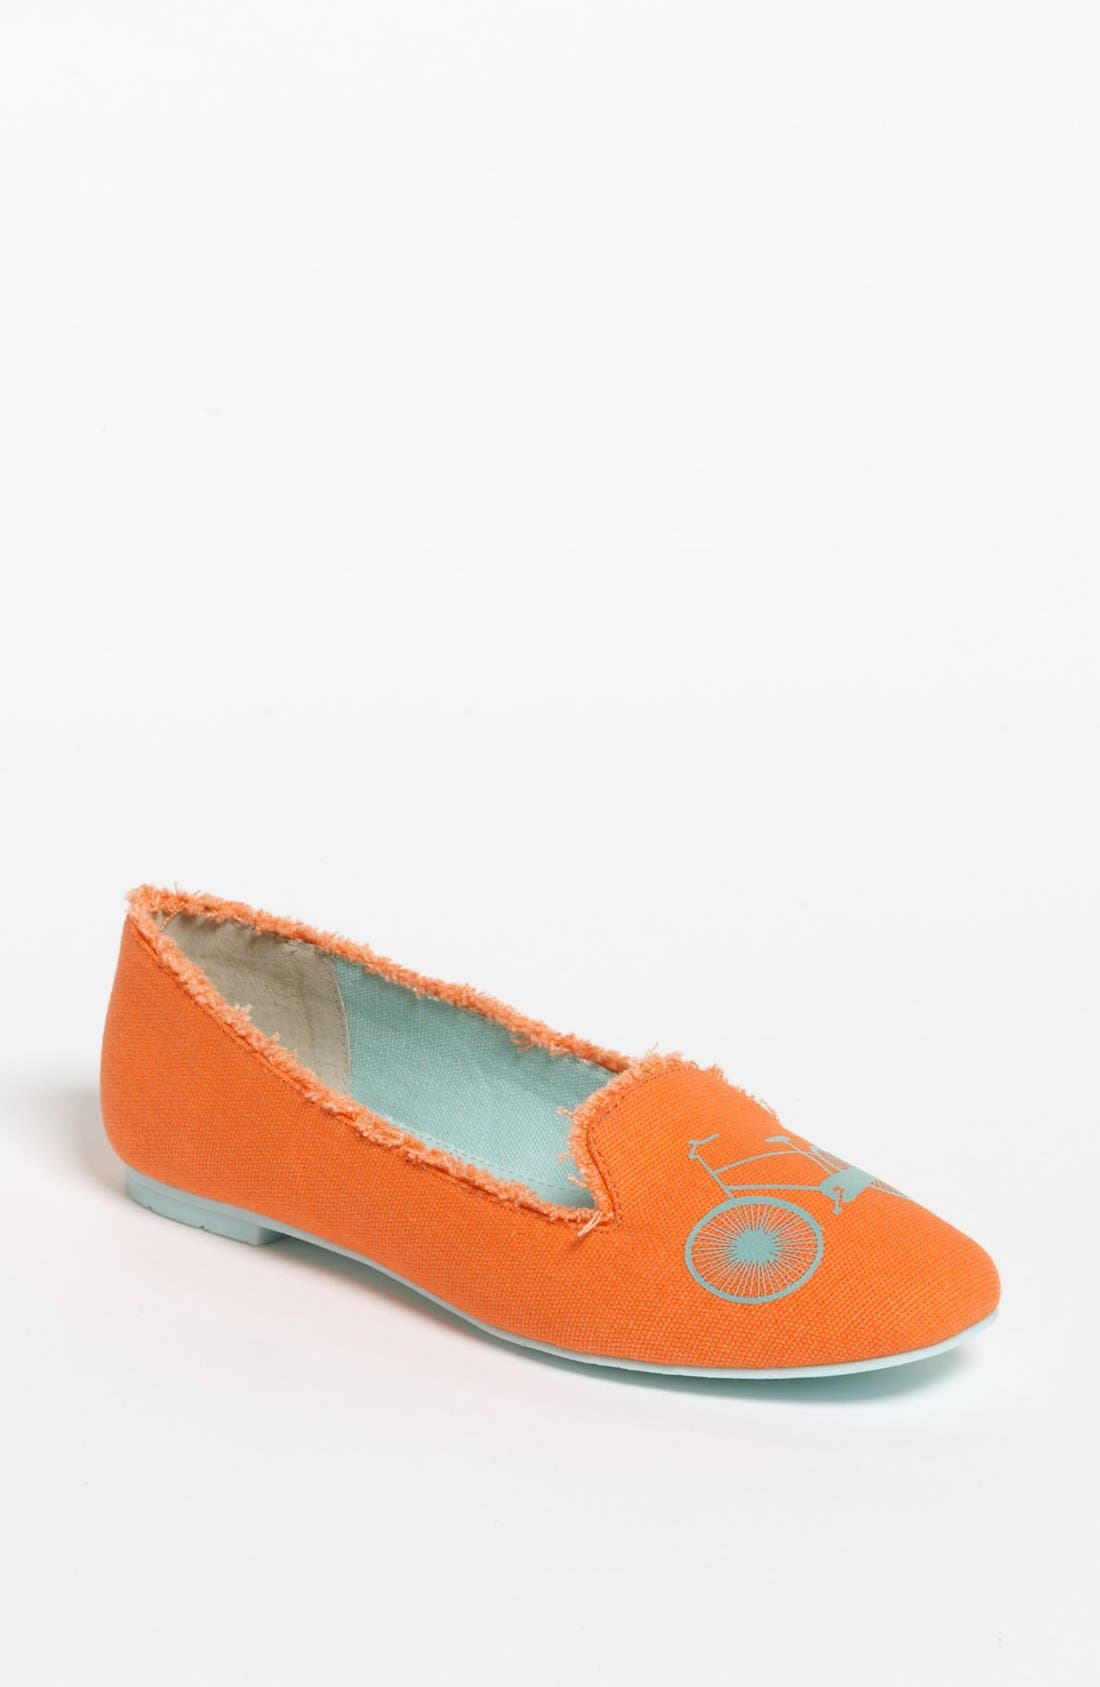 Alternate Image 1 Selected - BC Footwear 'Paint the Town Red' Flat